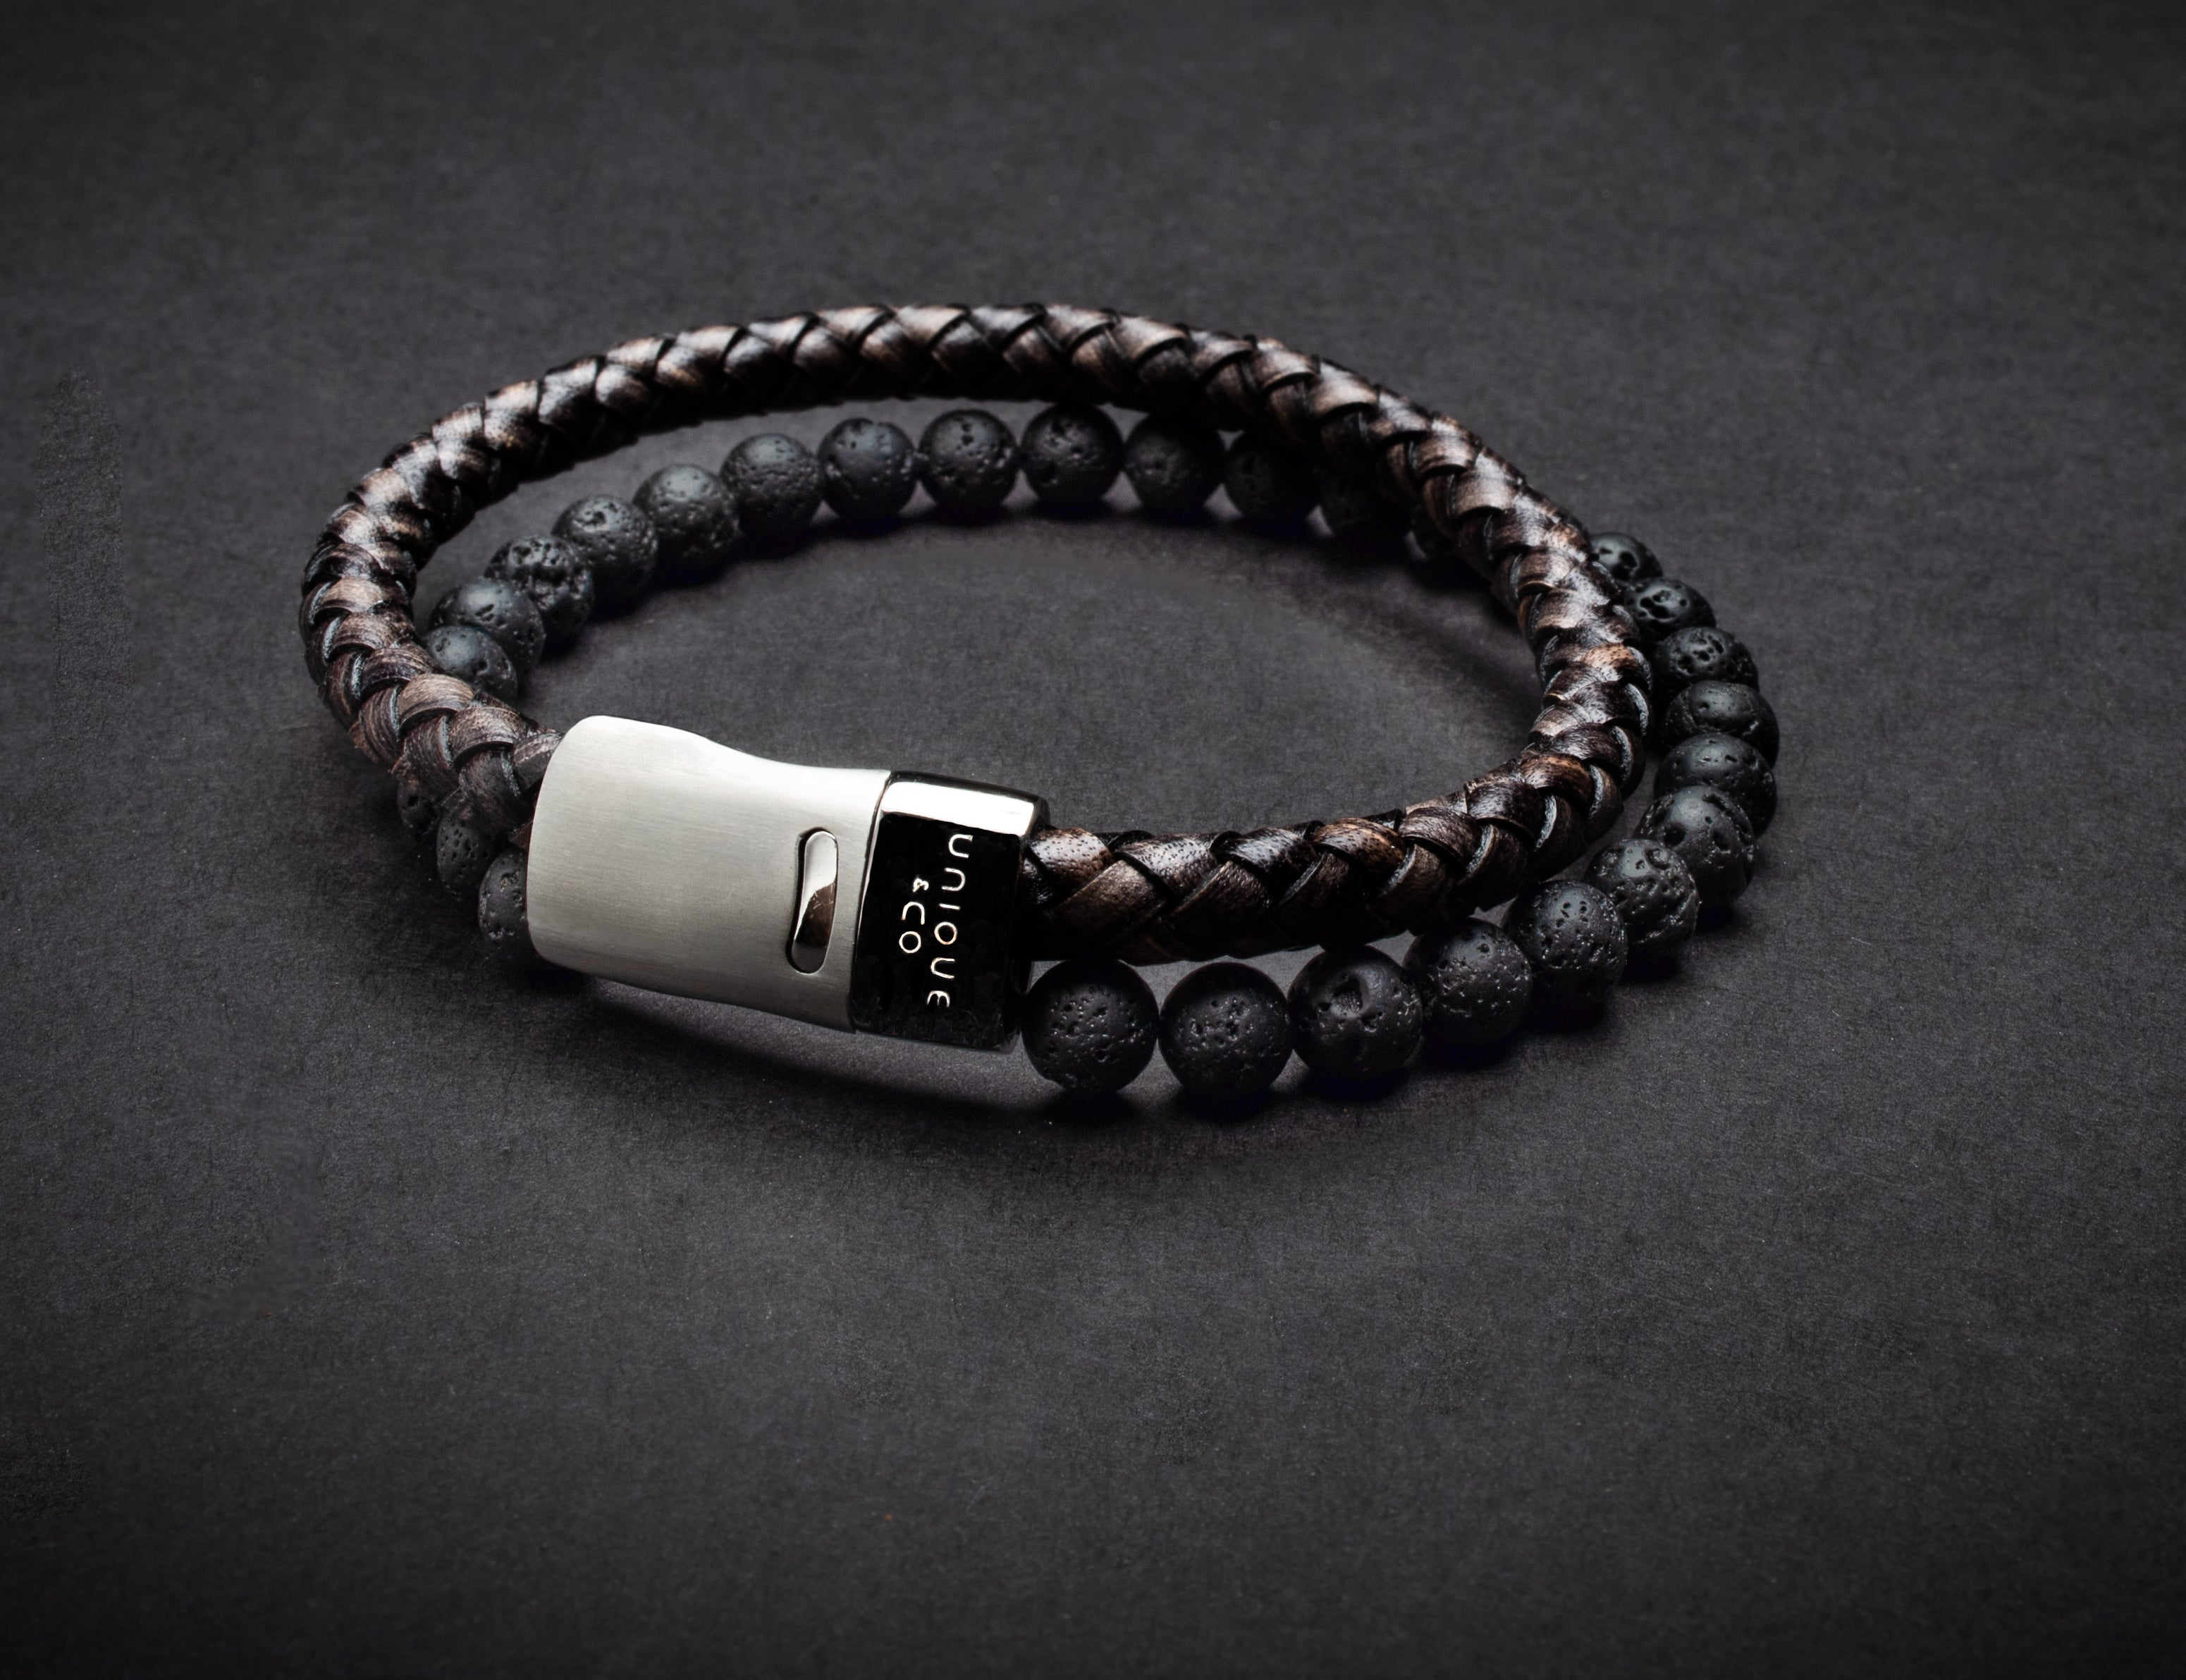 Stylish Men's Leather and Lava Stone Bracelet - Quality Gift for Men